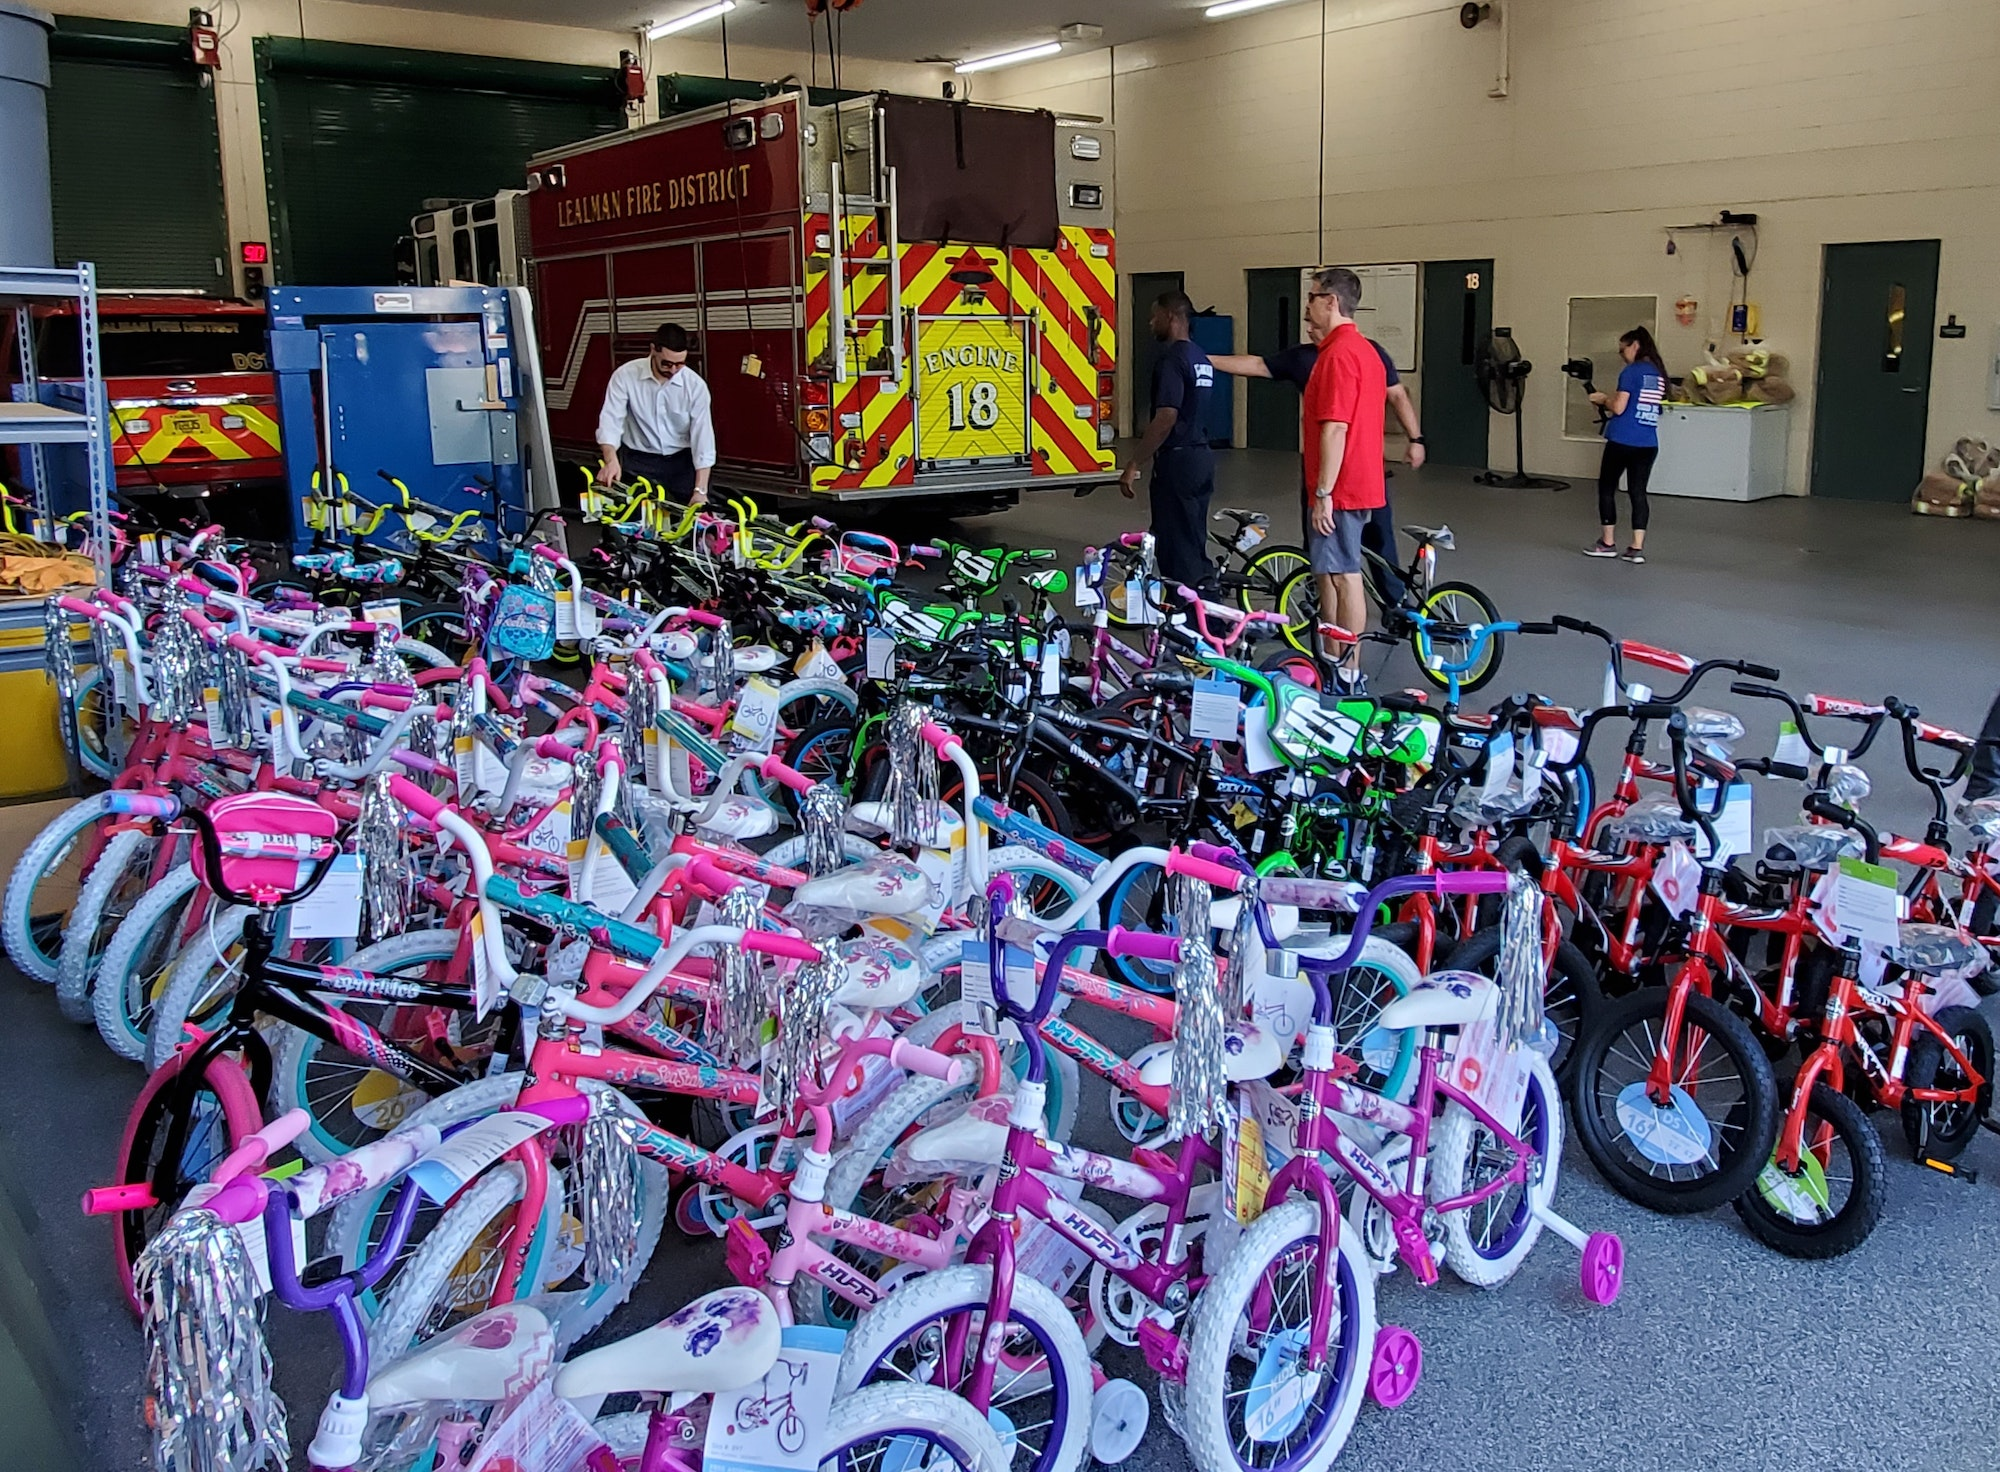 Picture of Bikes inside Fire Station 18 with people, and fire engine